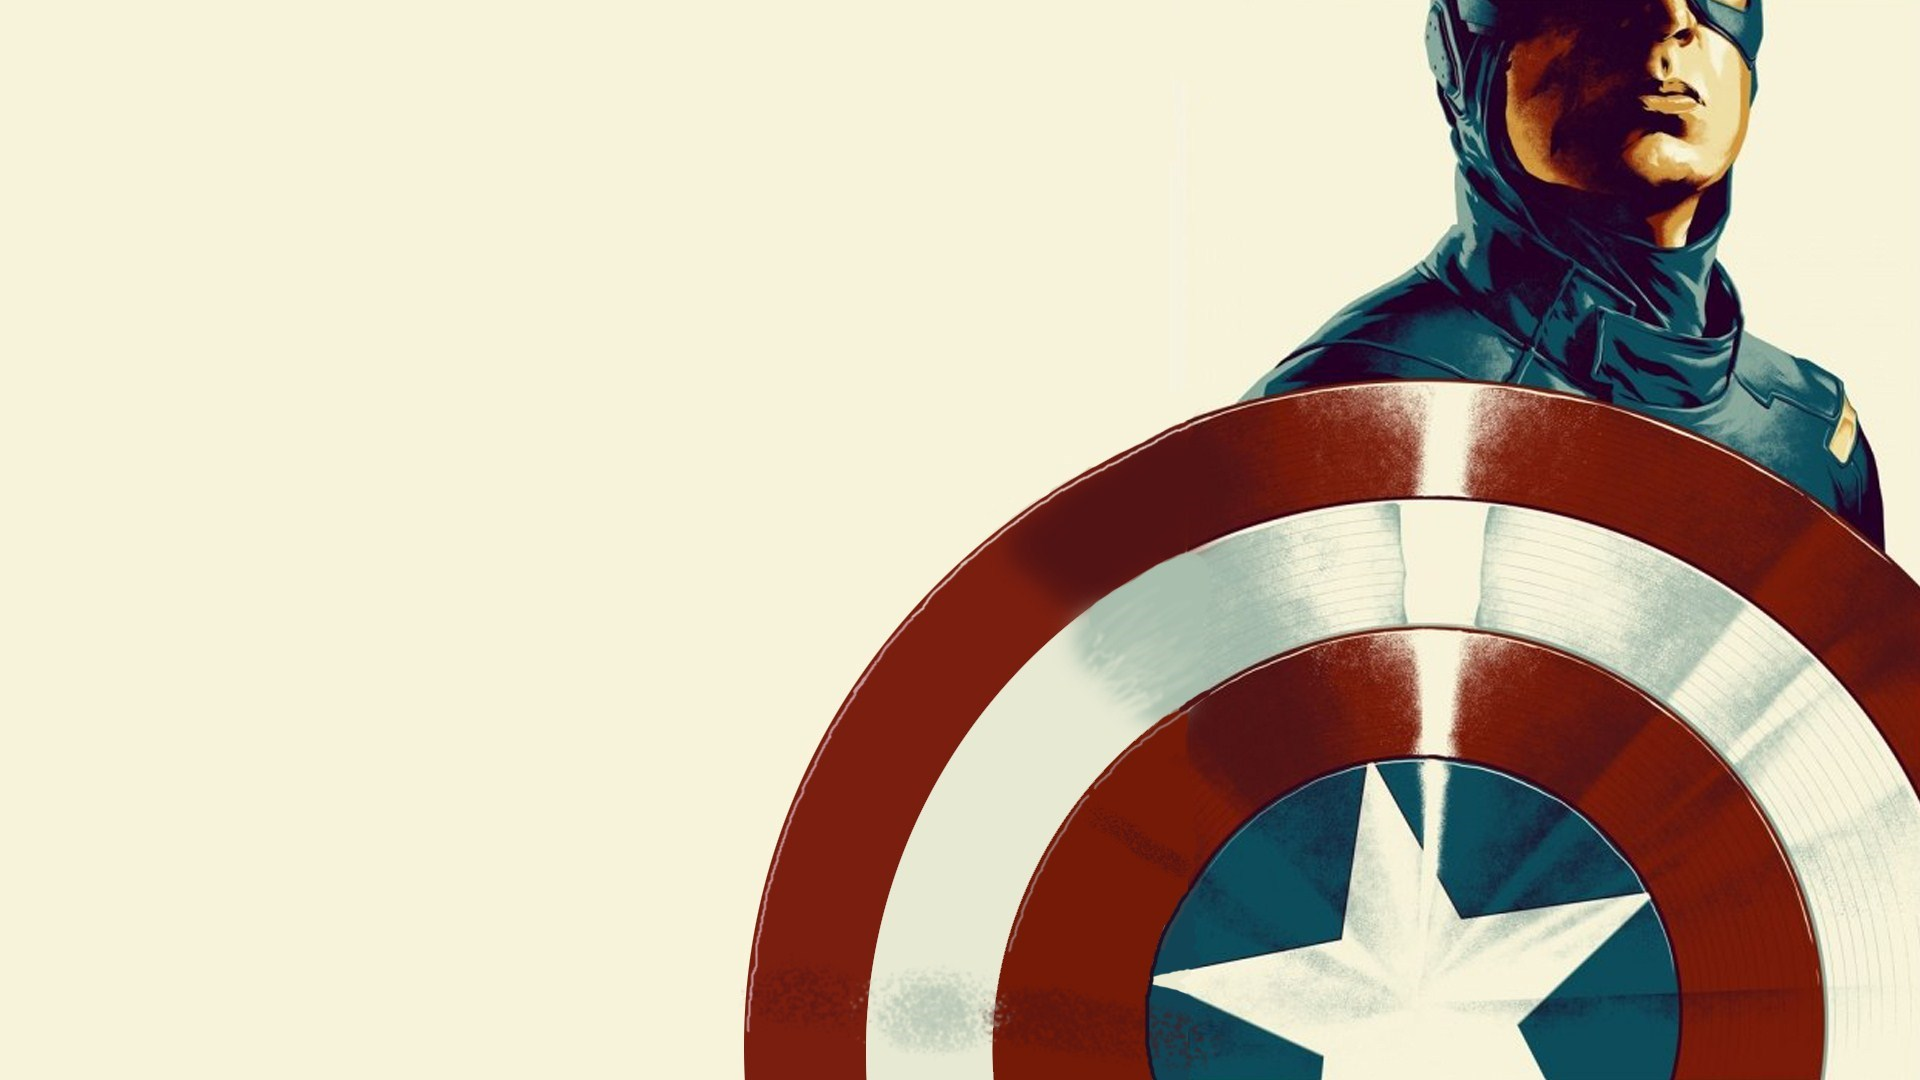 Captain America Shield Desktop HD Wallpapers 4278   HD Wallpapers Site 1920x1080